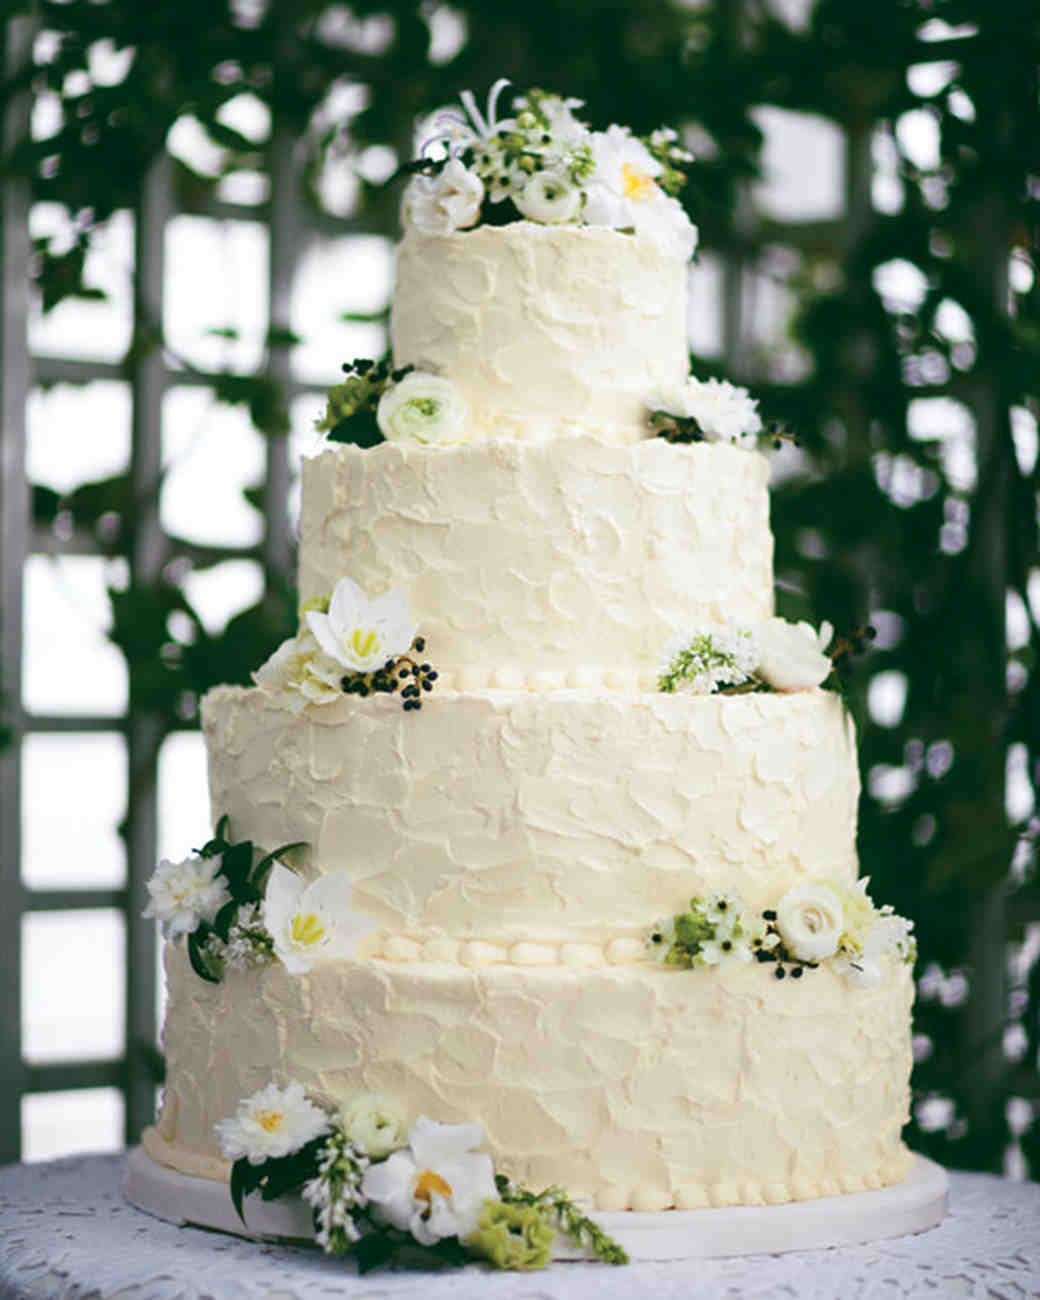 Four-Tiered White Wedding Cake with Green, Yellow, and White Flowers